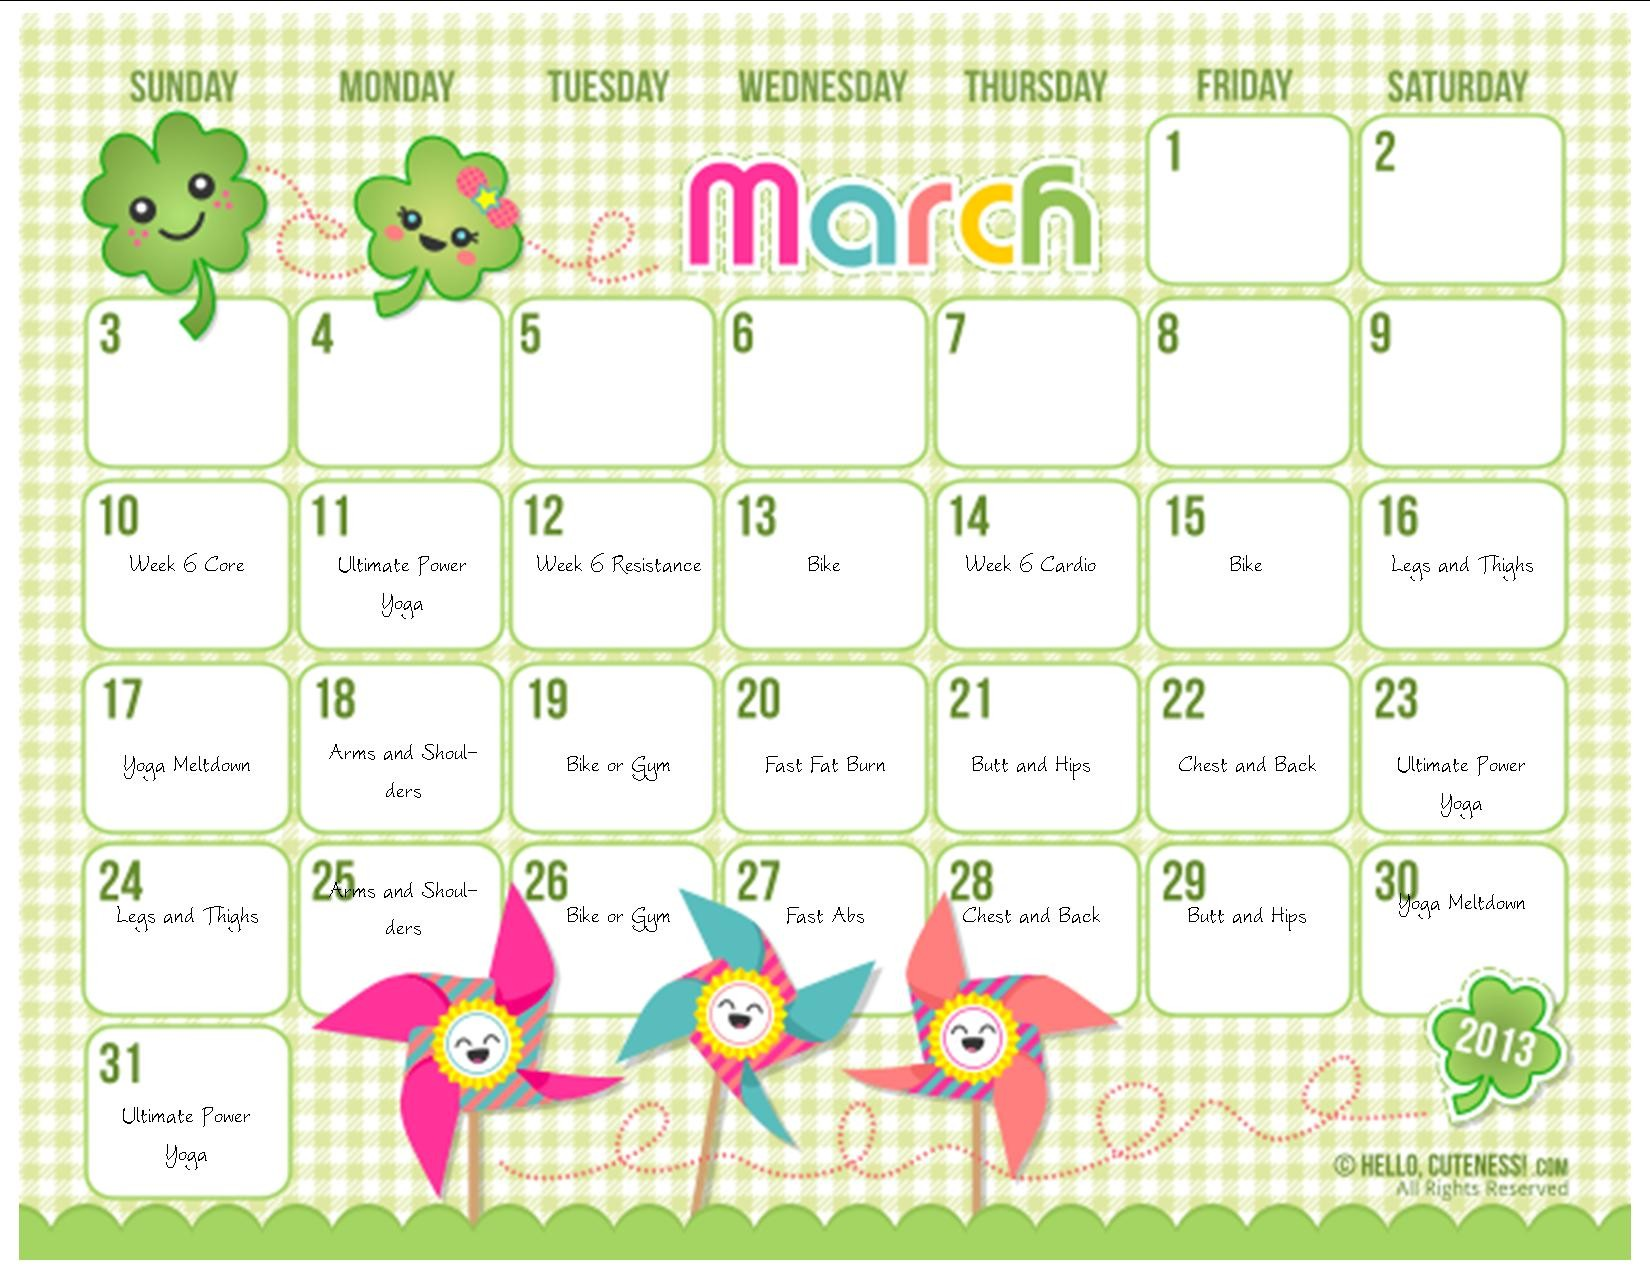 March Calendar for Kids Recientes Learning Customize Calendar Free Printable Template 2018 Best Of March Calendar for Kids Recientes Preschool Calendar Template Lara Expolicenciaslatam